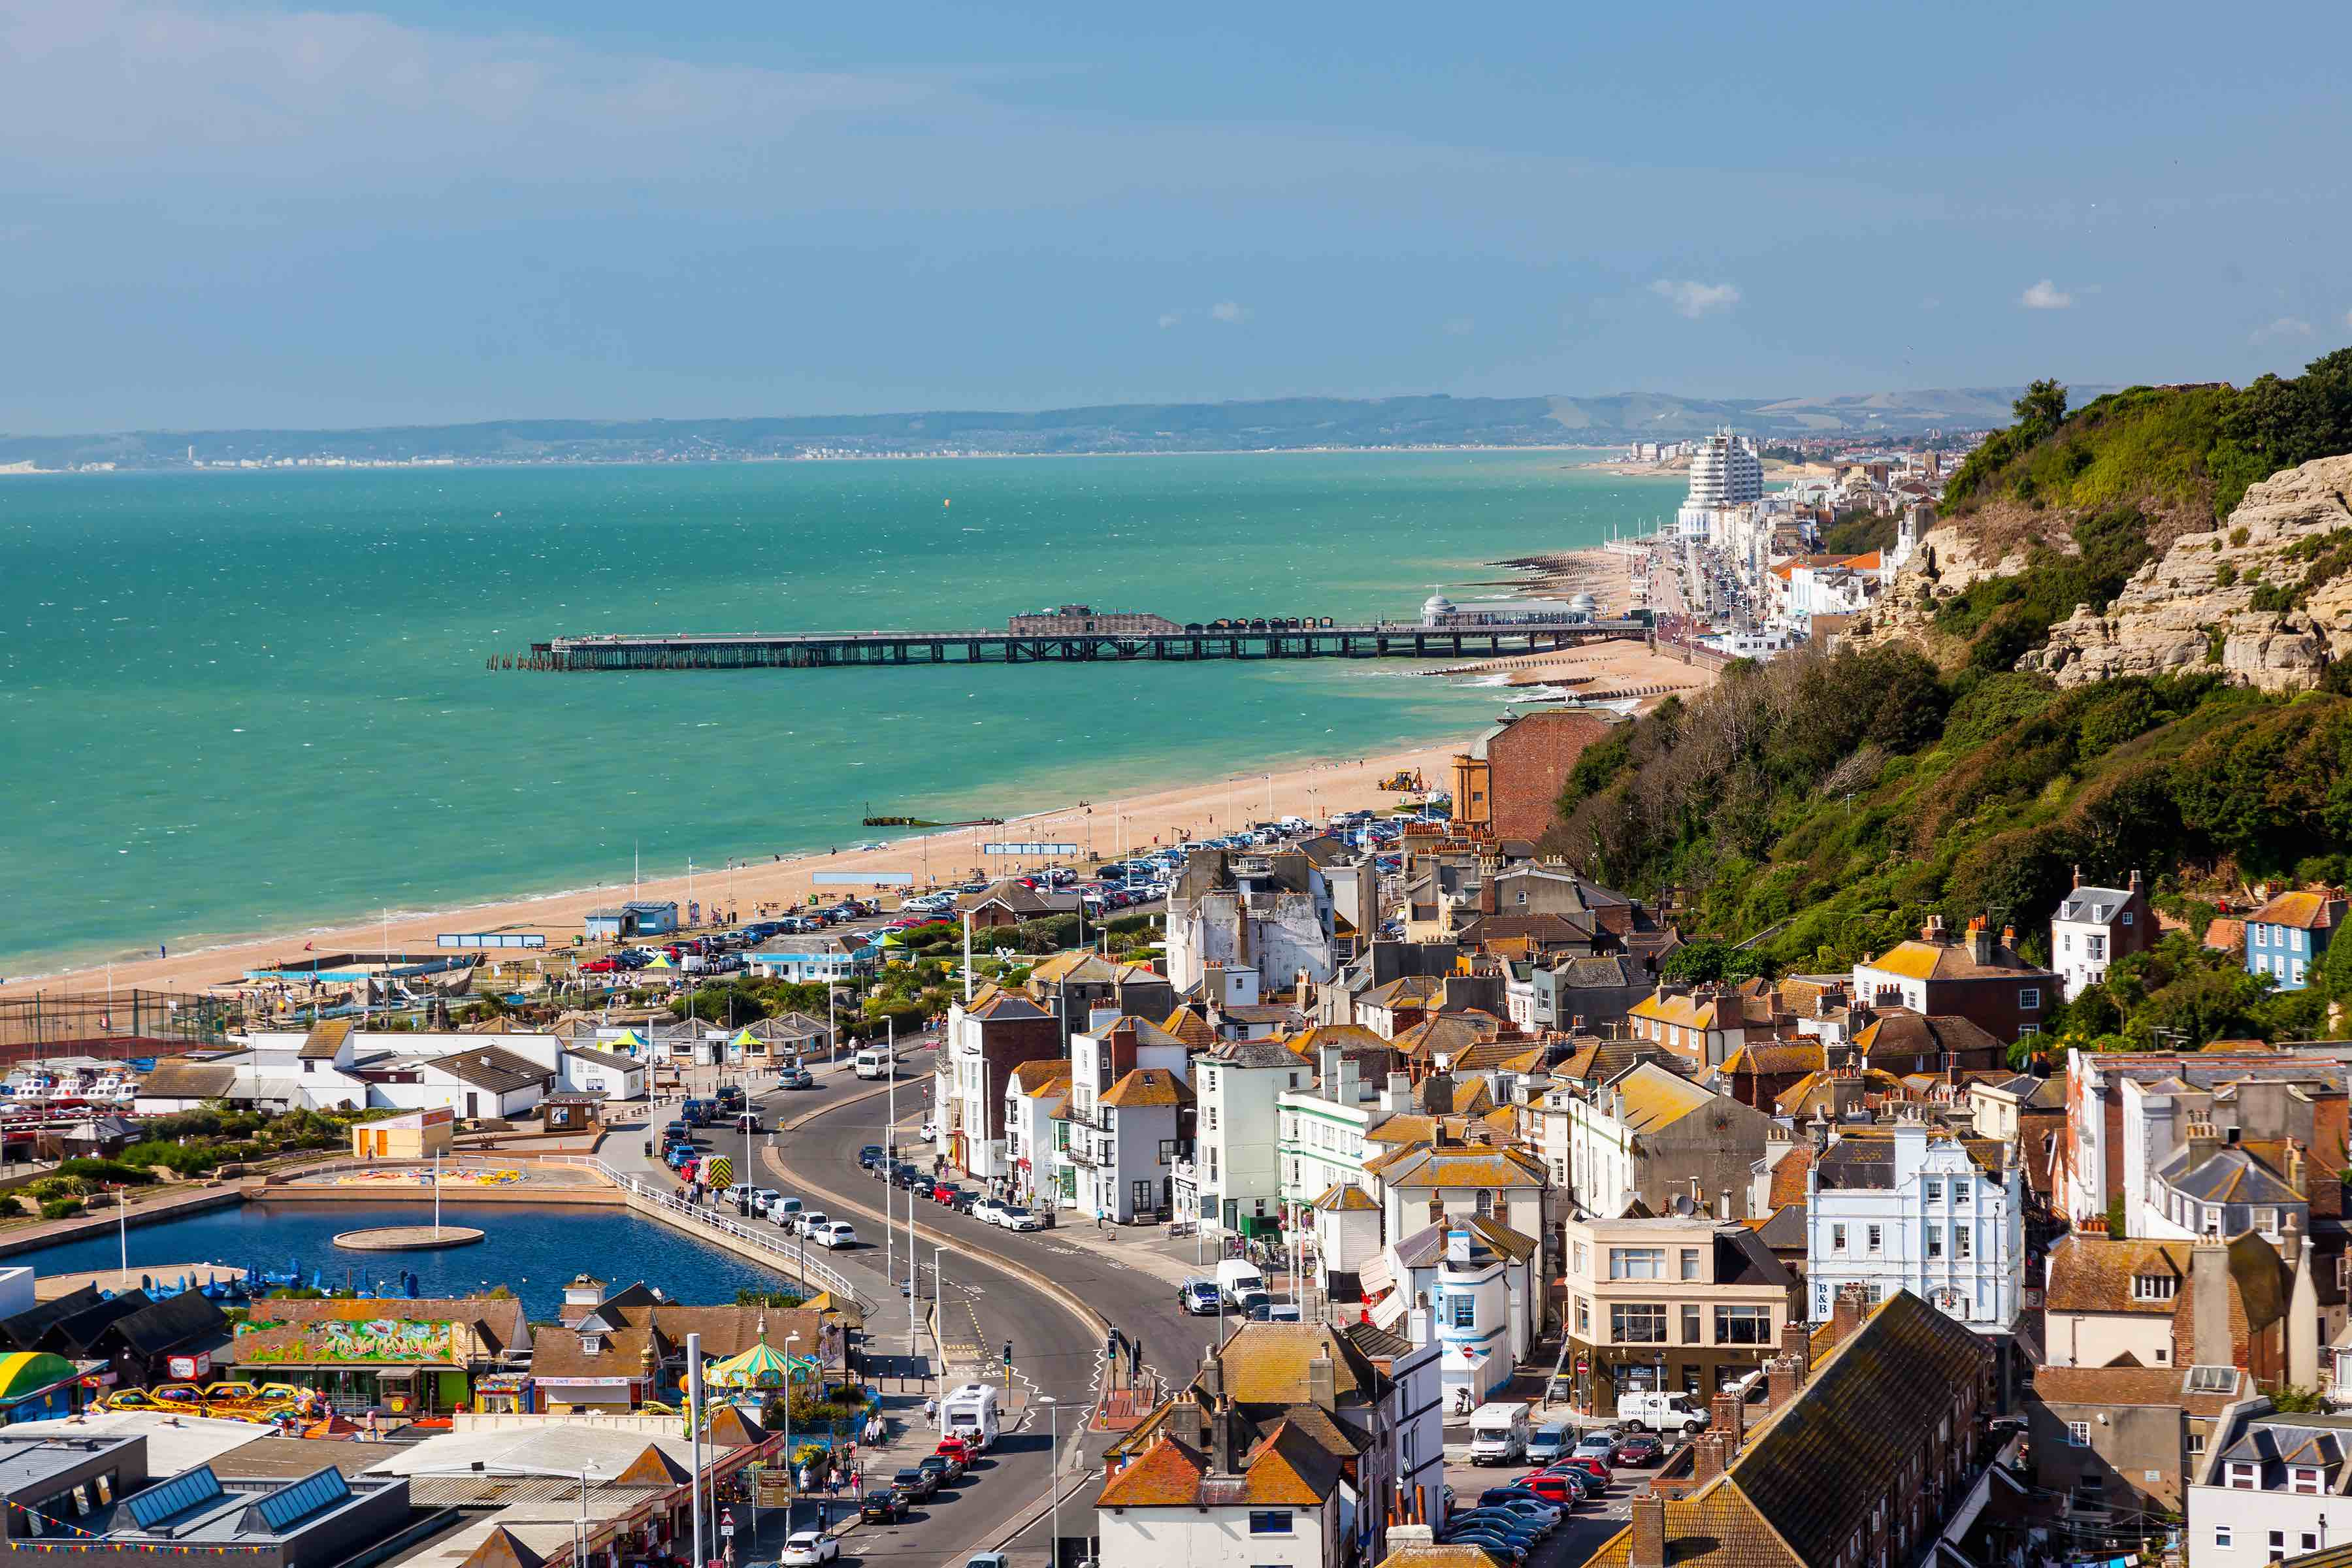 A picturesque view over the town of Hastings in East Sussex.